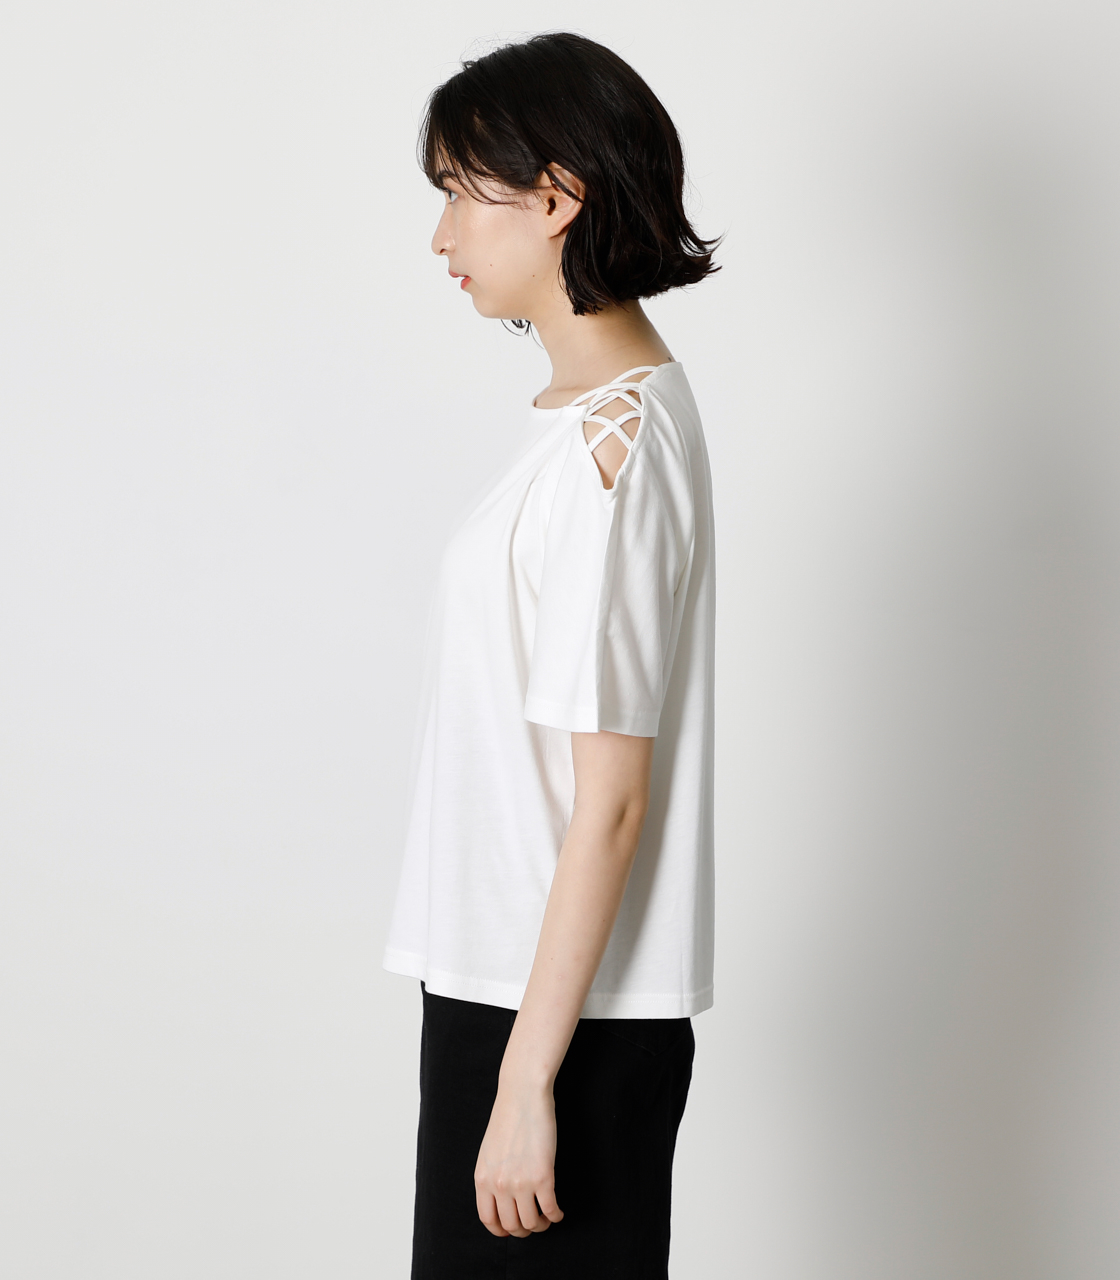 SHOULDER LACE UP TOPS/ショルダーレースアップトップス 詳細画像 O/WHT 5